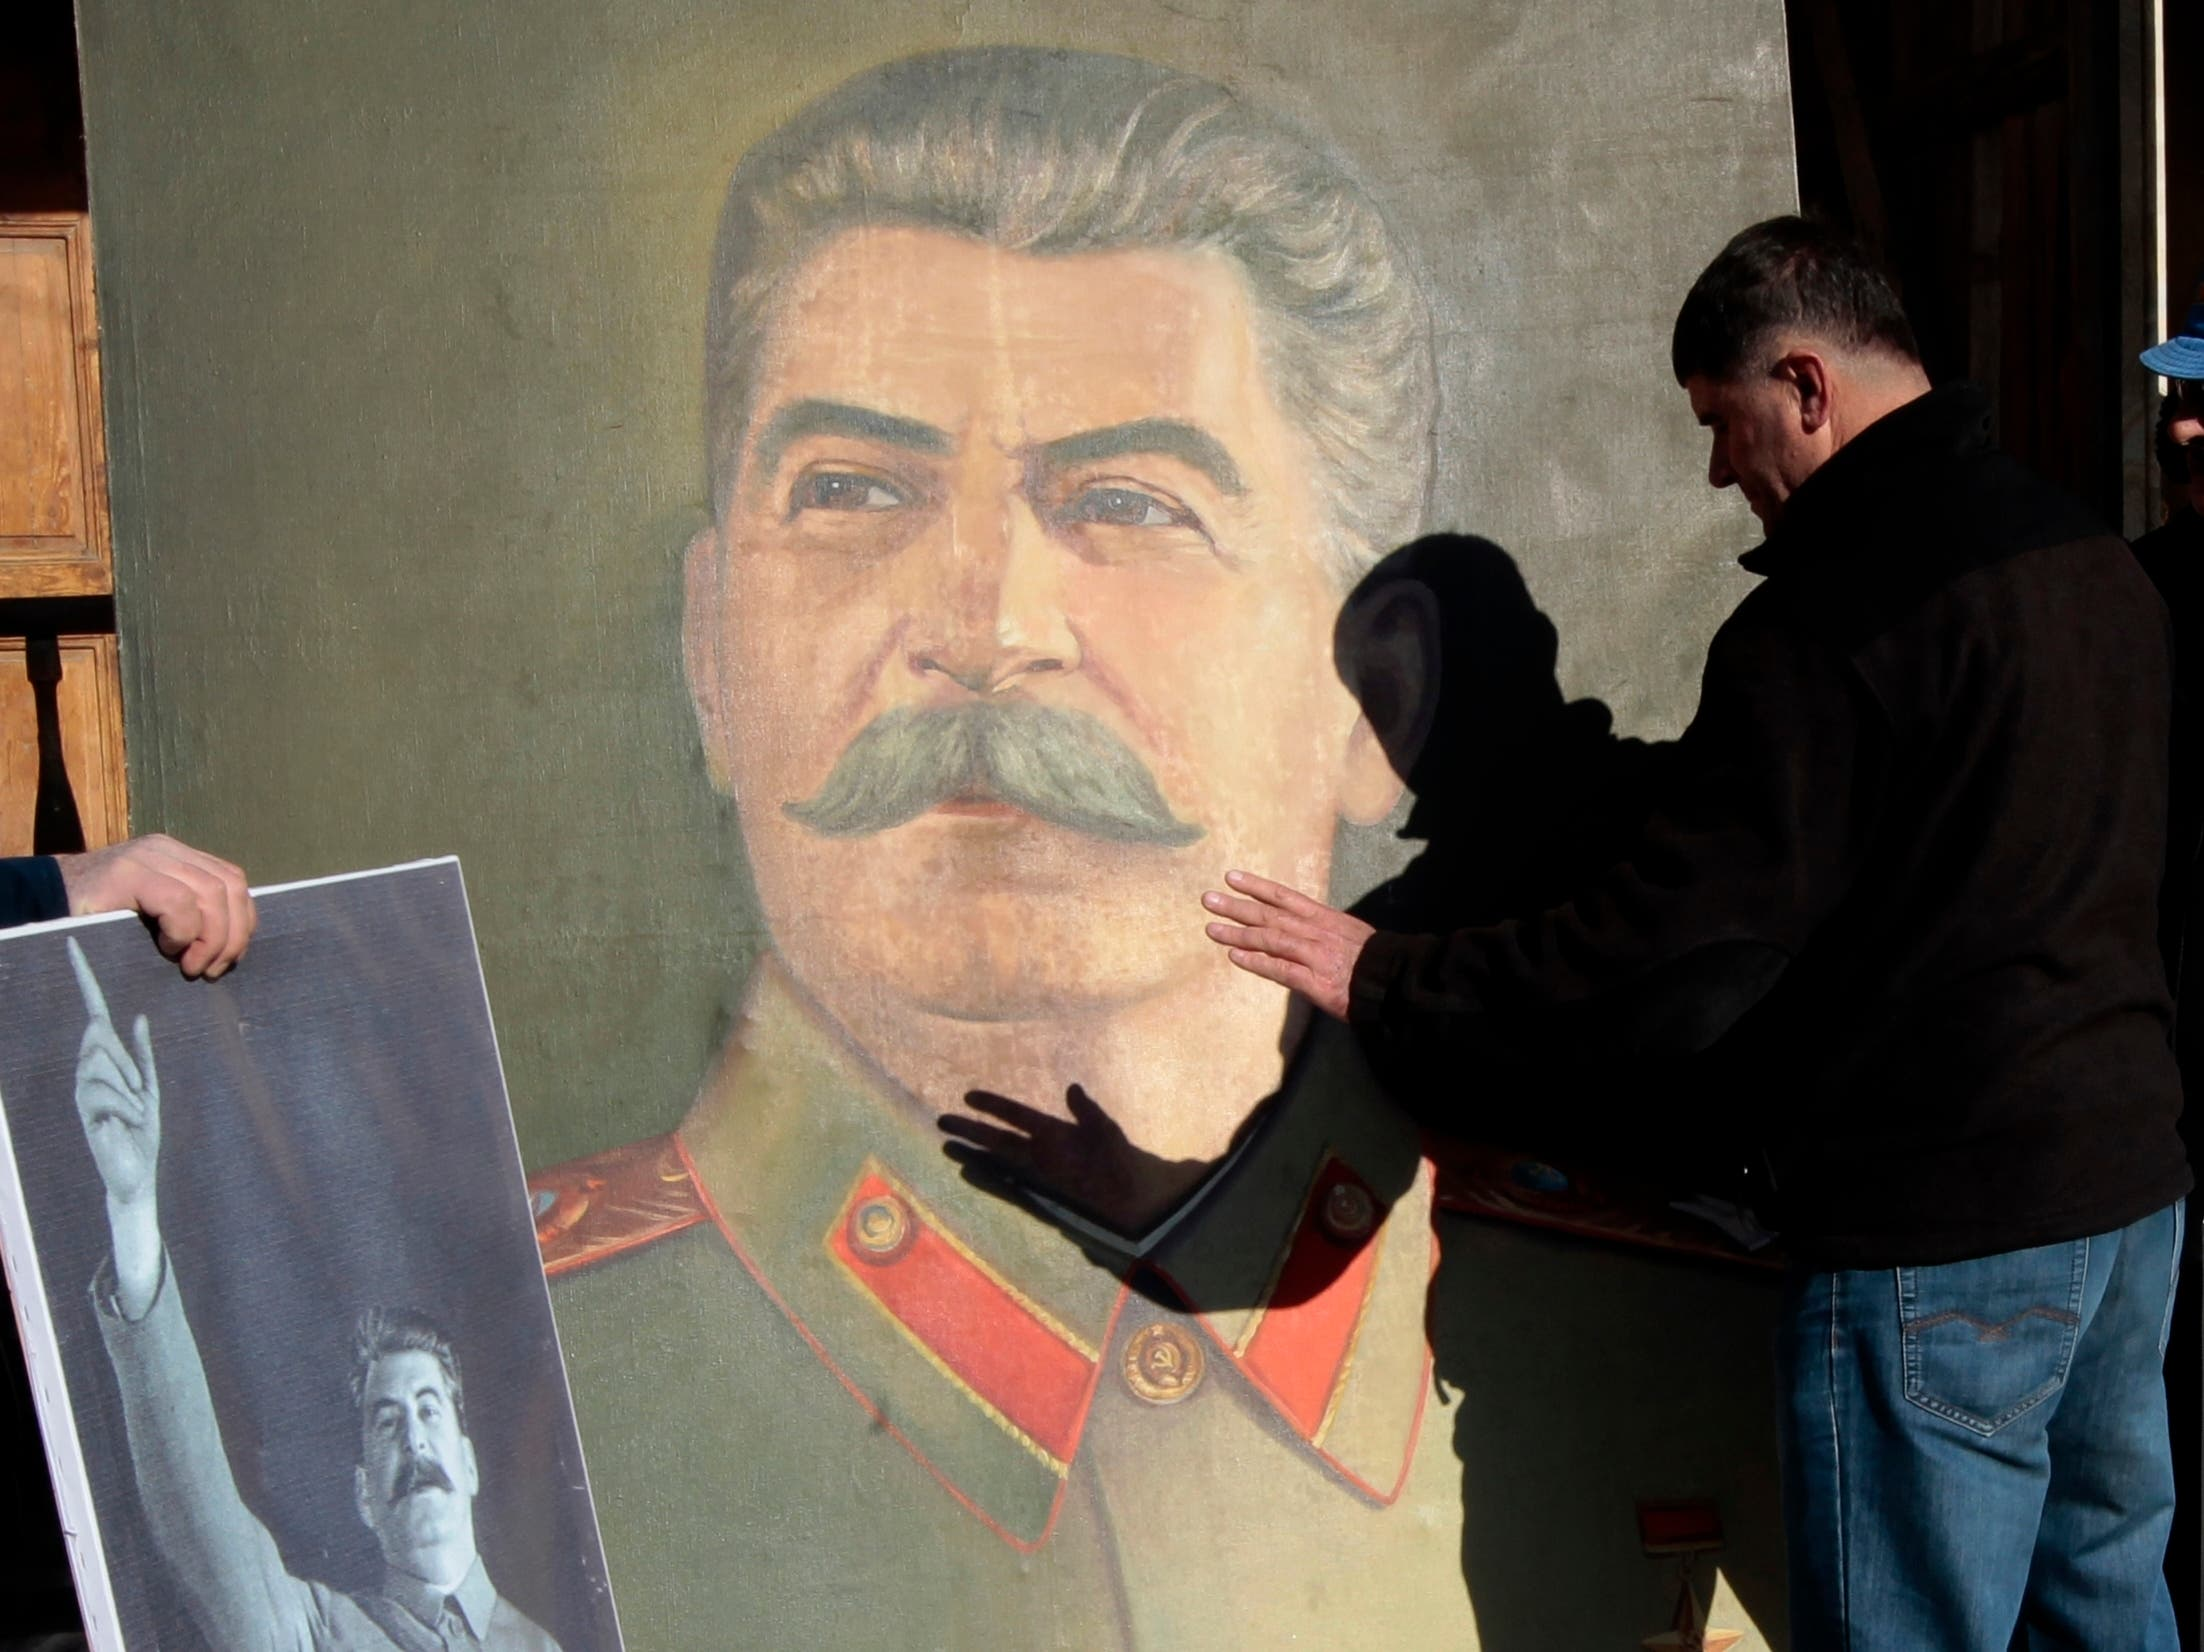 A Georgian man plays with a shadow on a portrait of Soviet dictator Joseph Stalin, during a rally marking Stalin's birthday in his home town of Gori, some 80 km (50 miles) west of the Georgian capital Tbilisi. (AP)